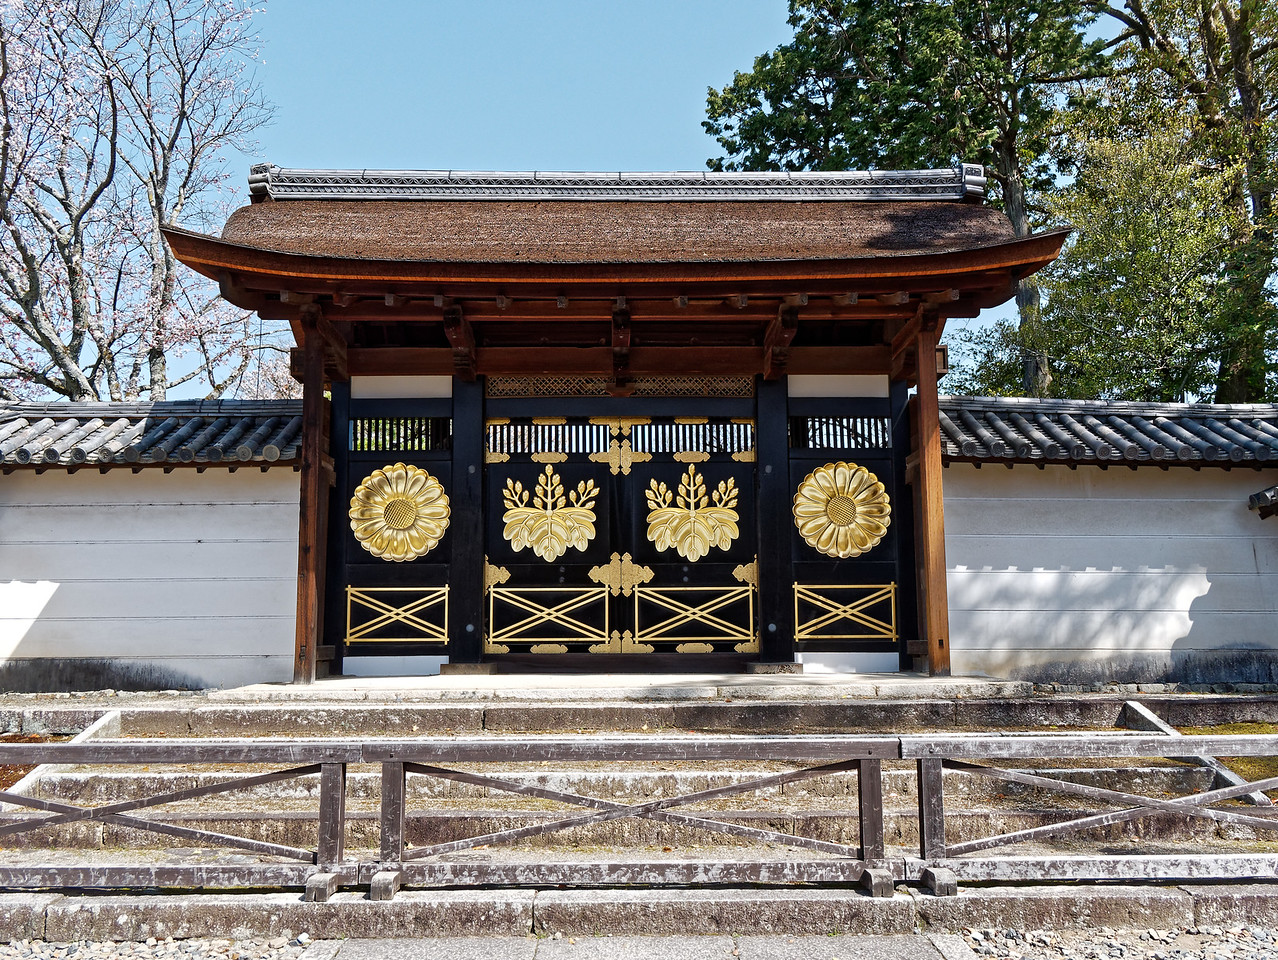 An entrance gate displays the family crest of Toyotomi Hideyoshi.